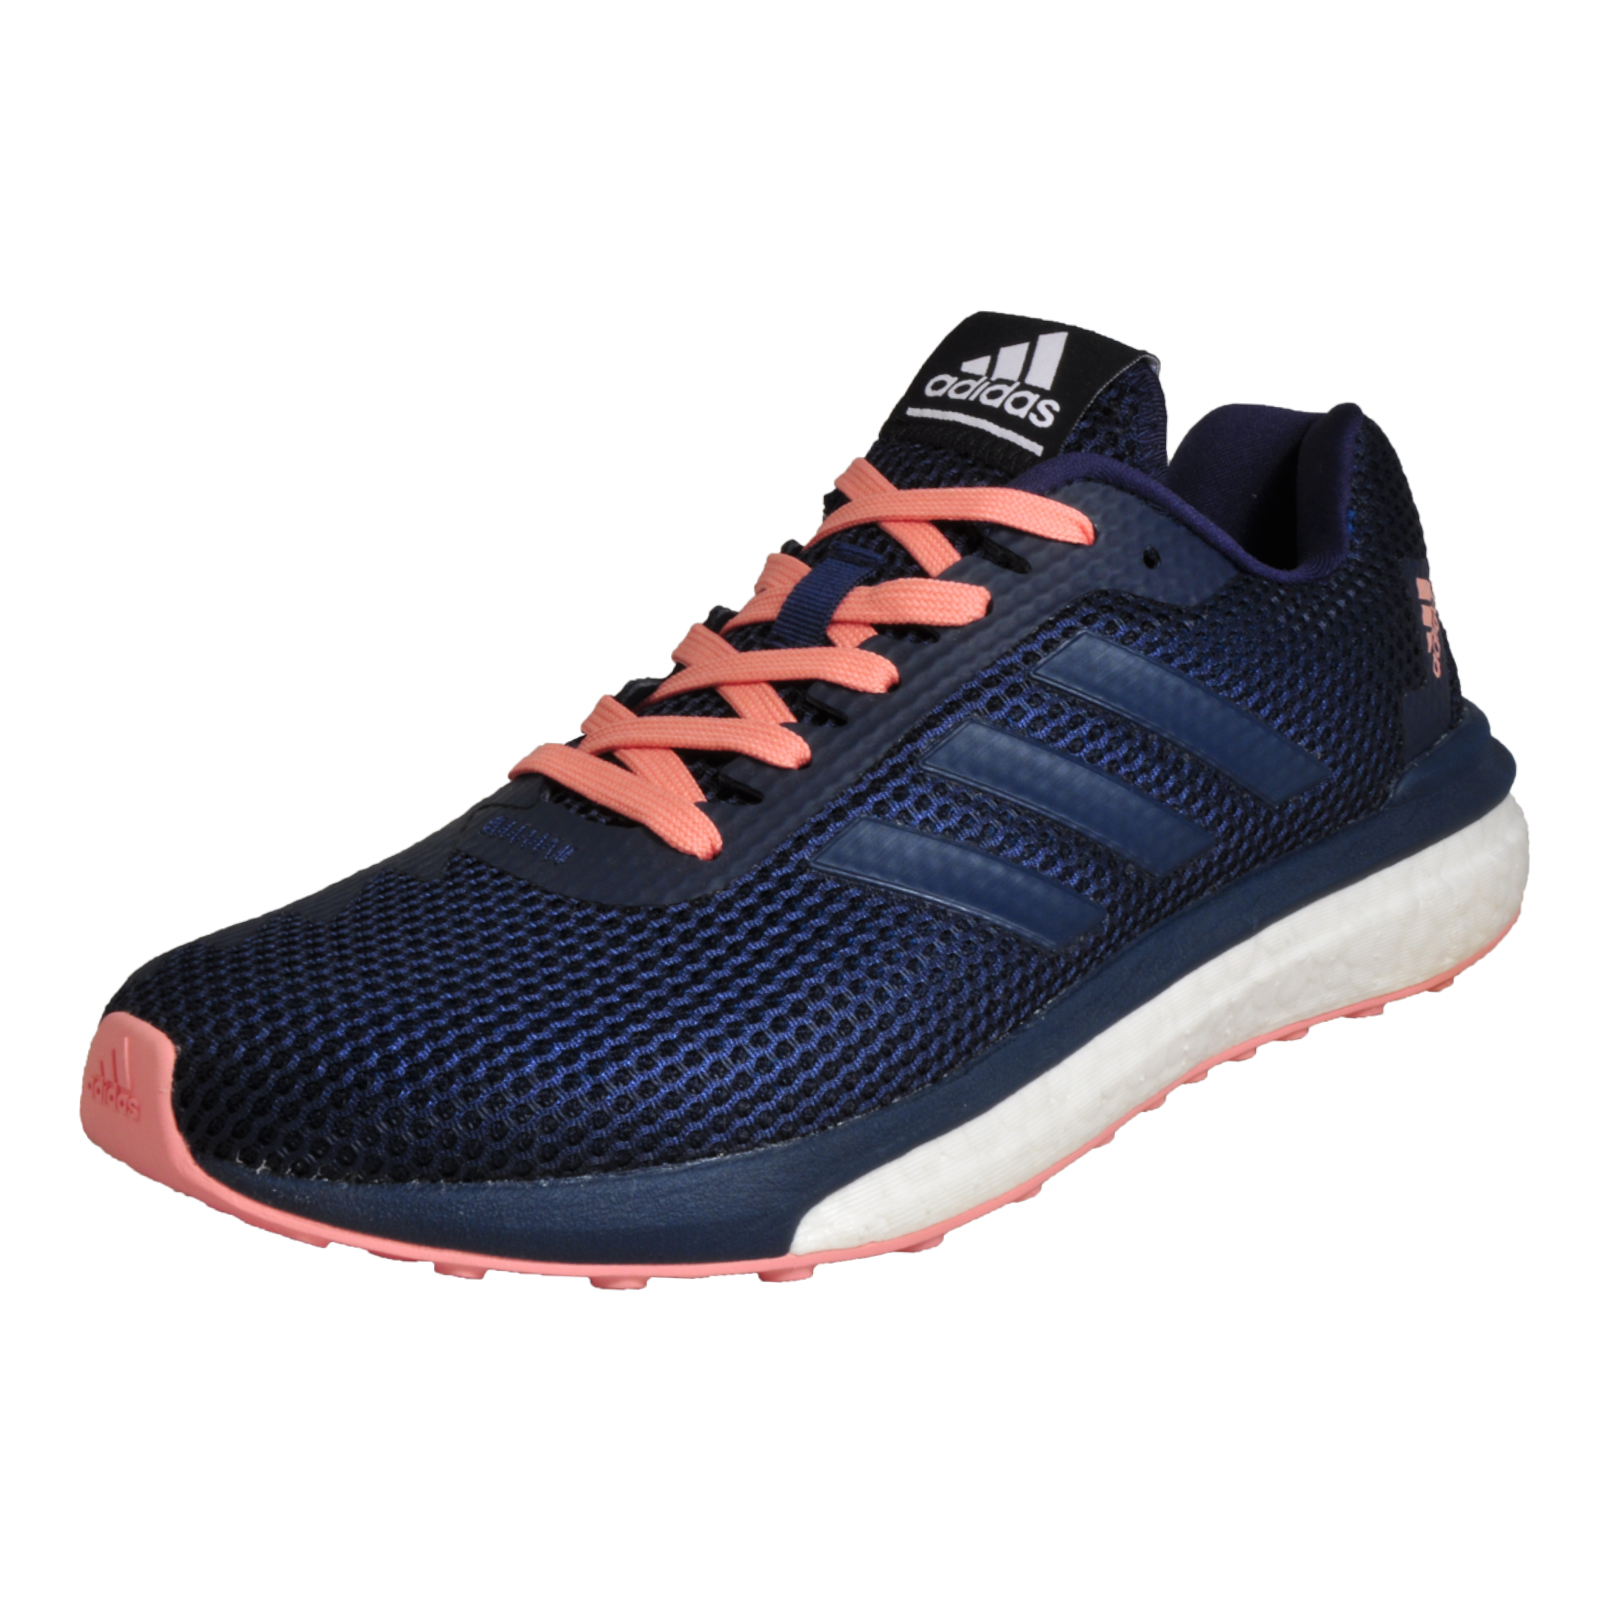 01722c347abf Details about Adidas Vengeful Boost Women s Running Shoes Fitness Gym  Workout Trainers Navy